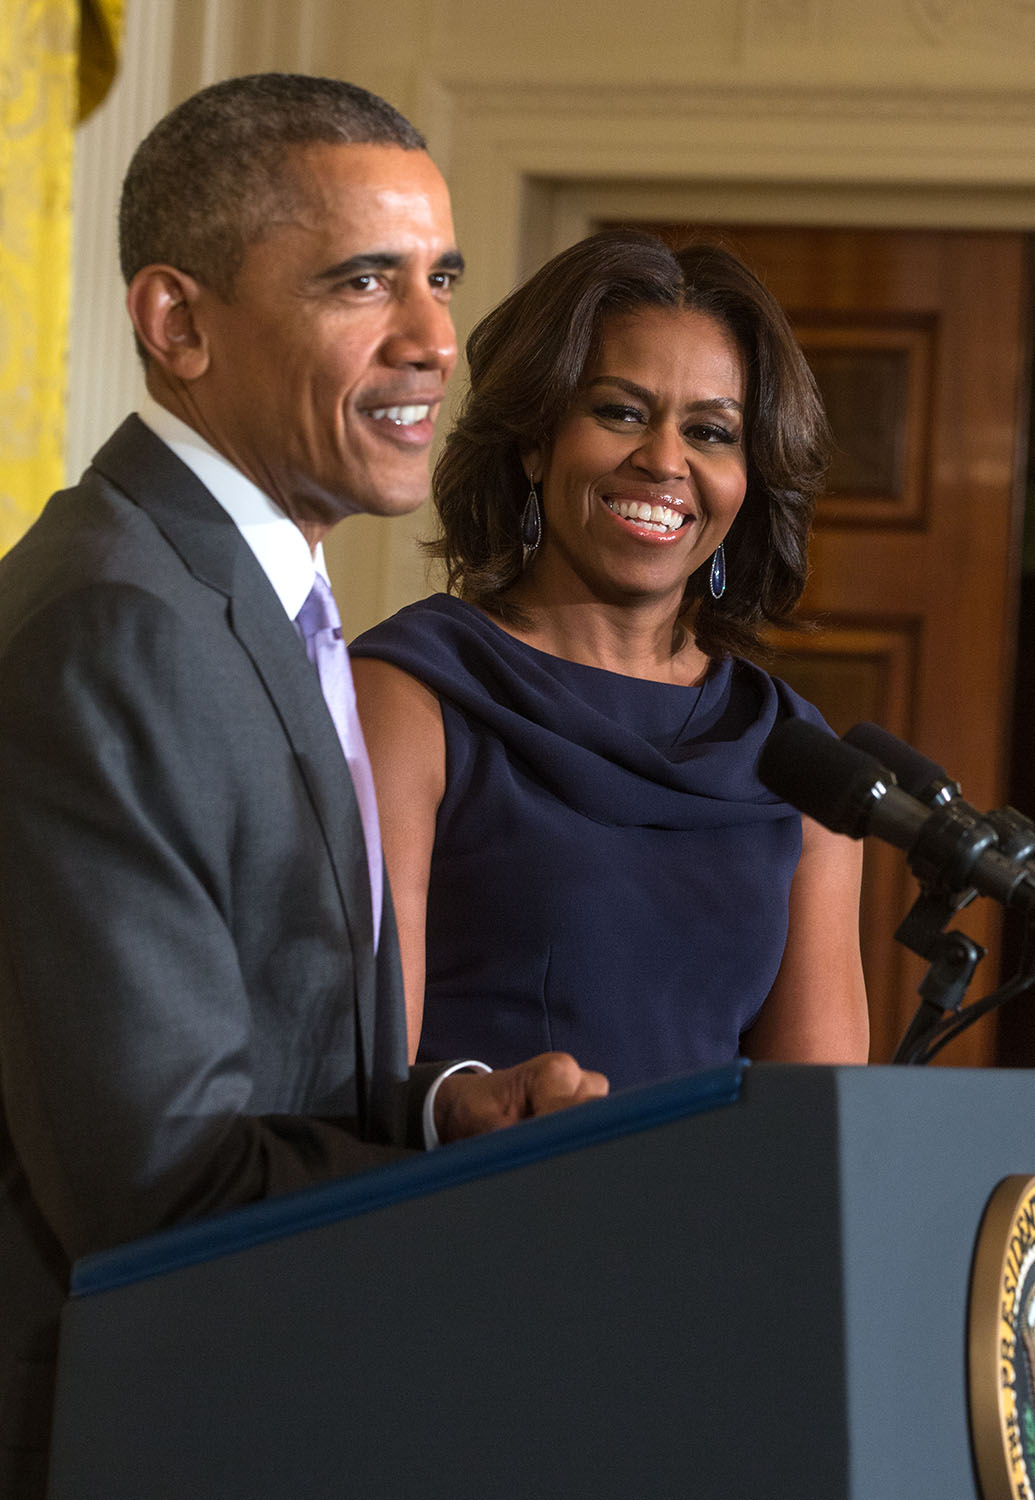 President Obama, with First Lady Michelle Obama, delivers remarks at a